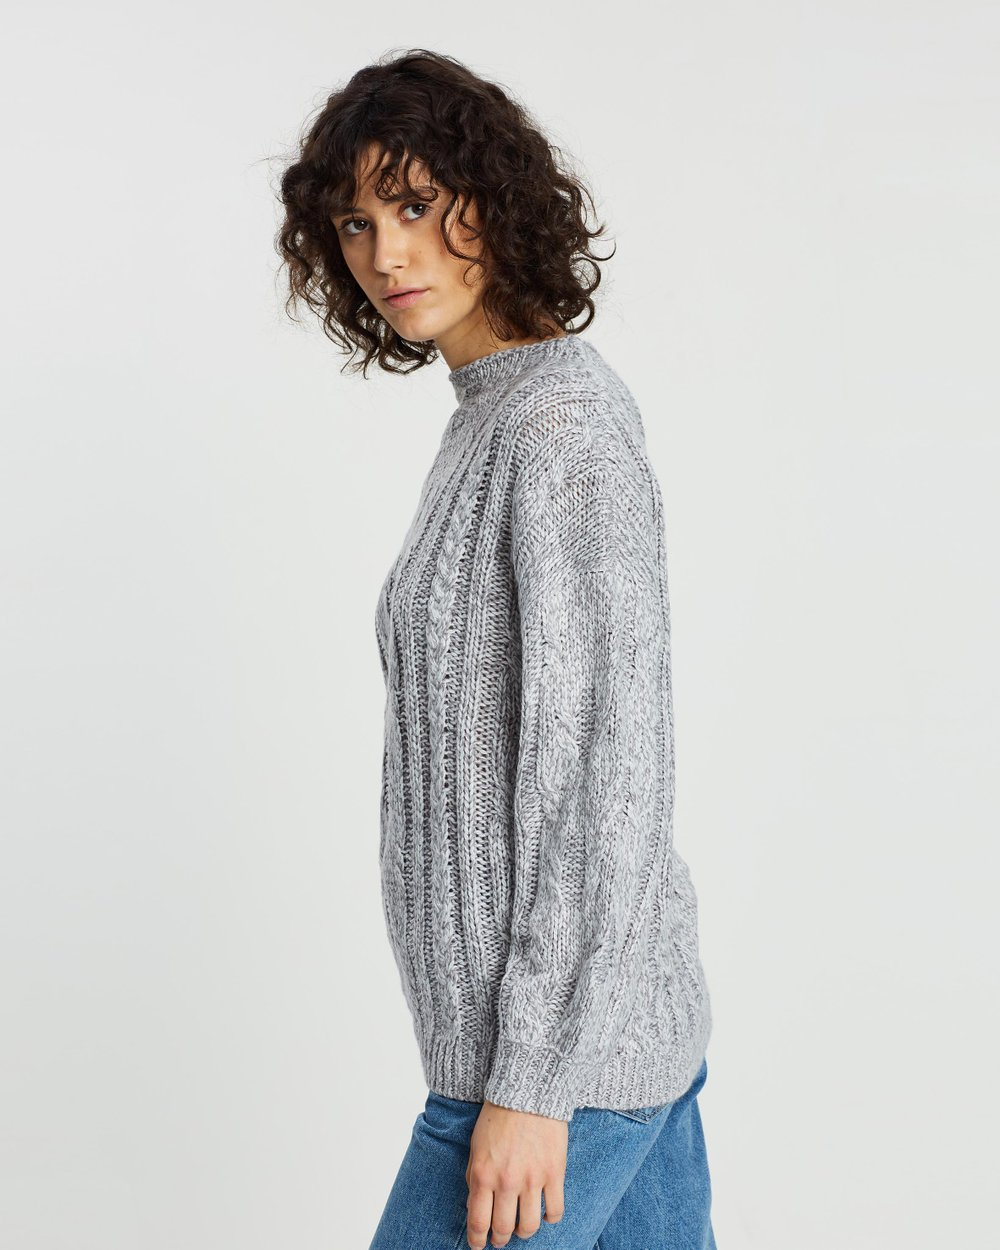 00a58e1e6525 Folklore Chunky Knit by Rusty Online | THE ICONIC | Australia